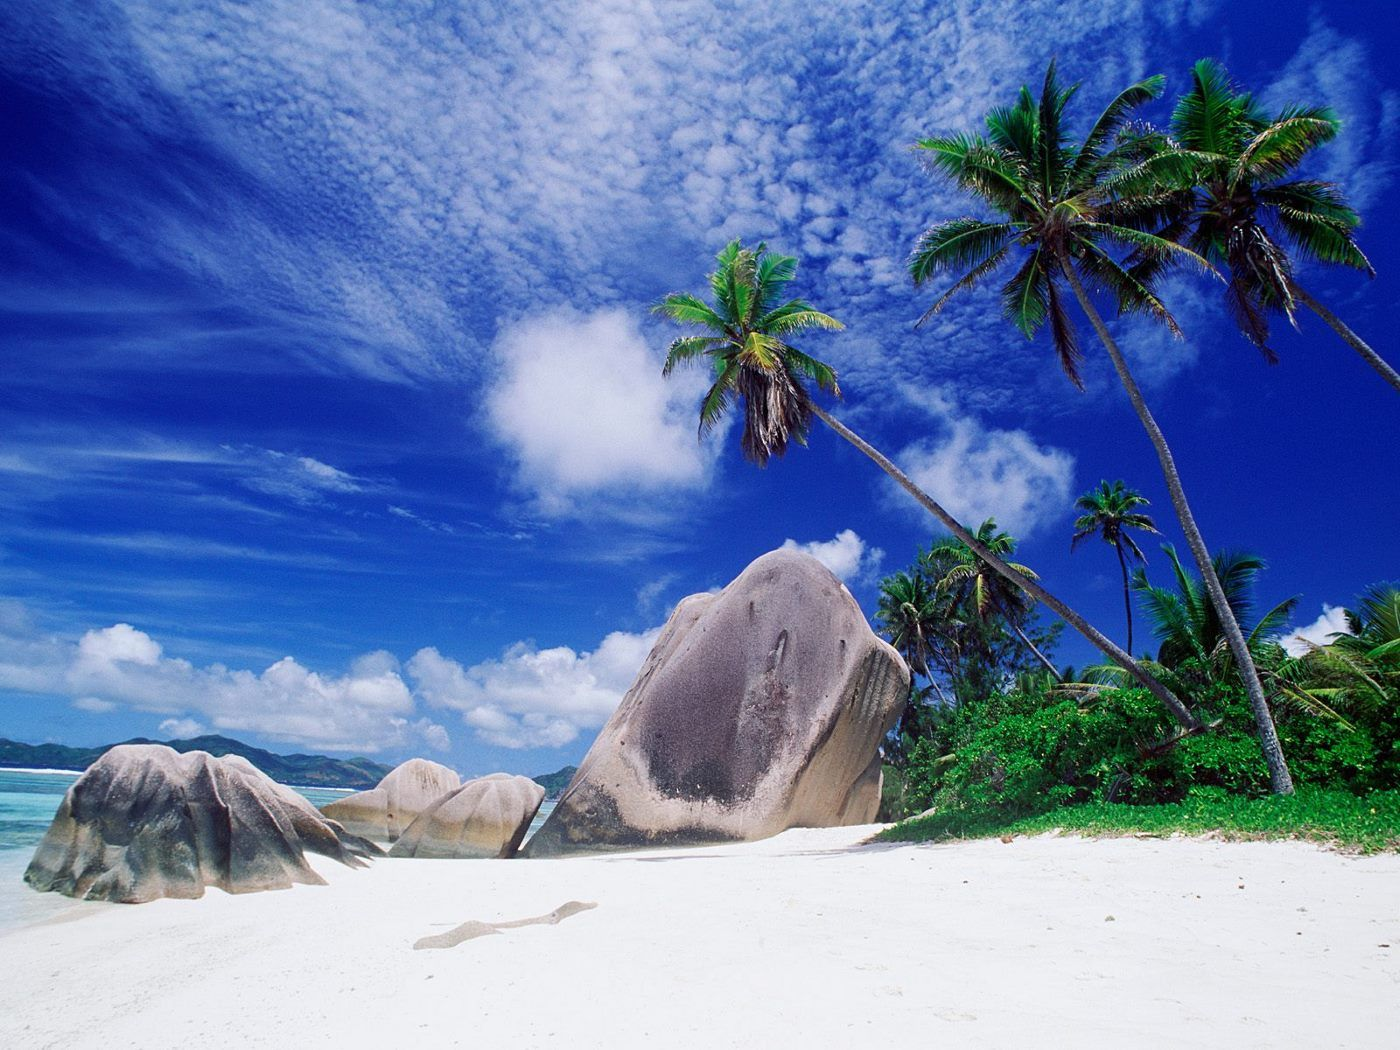 download Tropical Paradise wallpaper 1400x1050